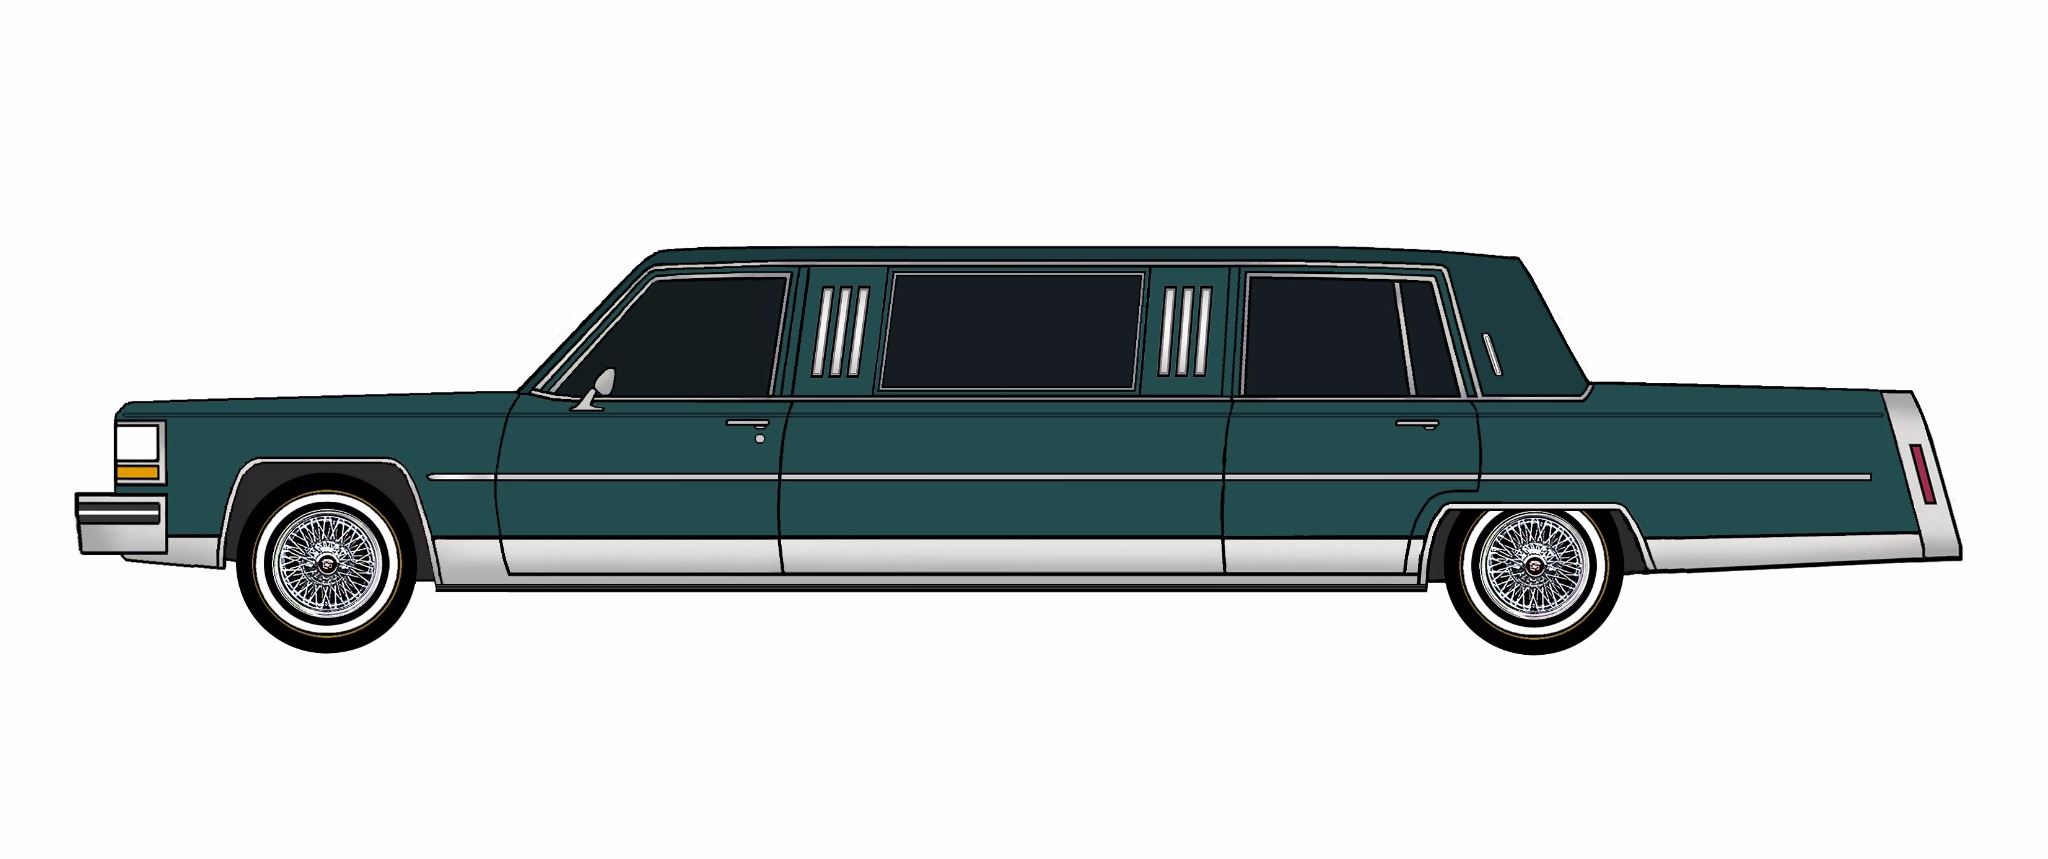 1984 Cadillac Fleetwood Brougham Limo TEAL